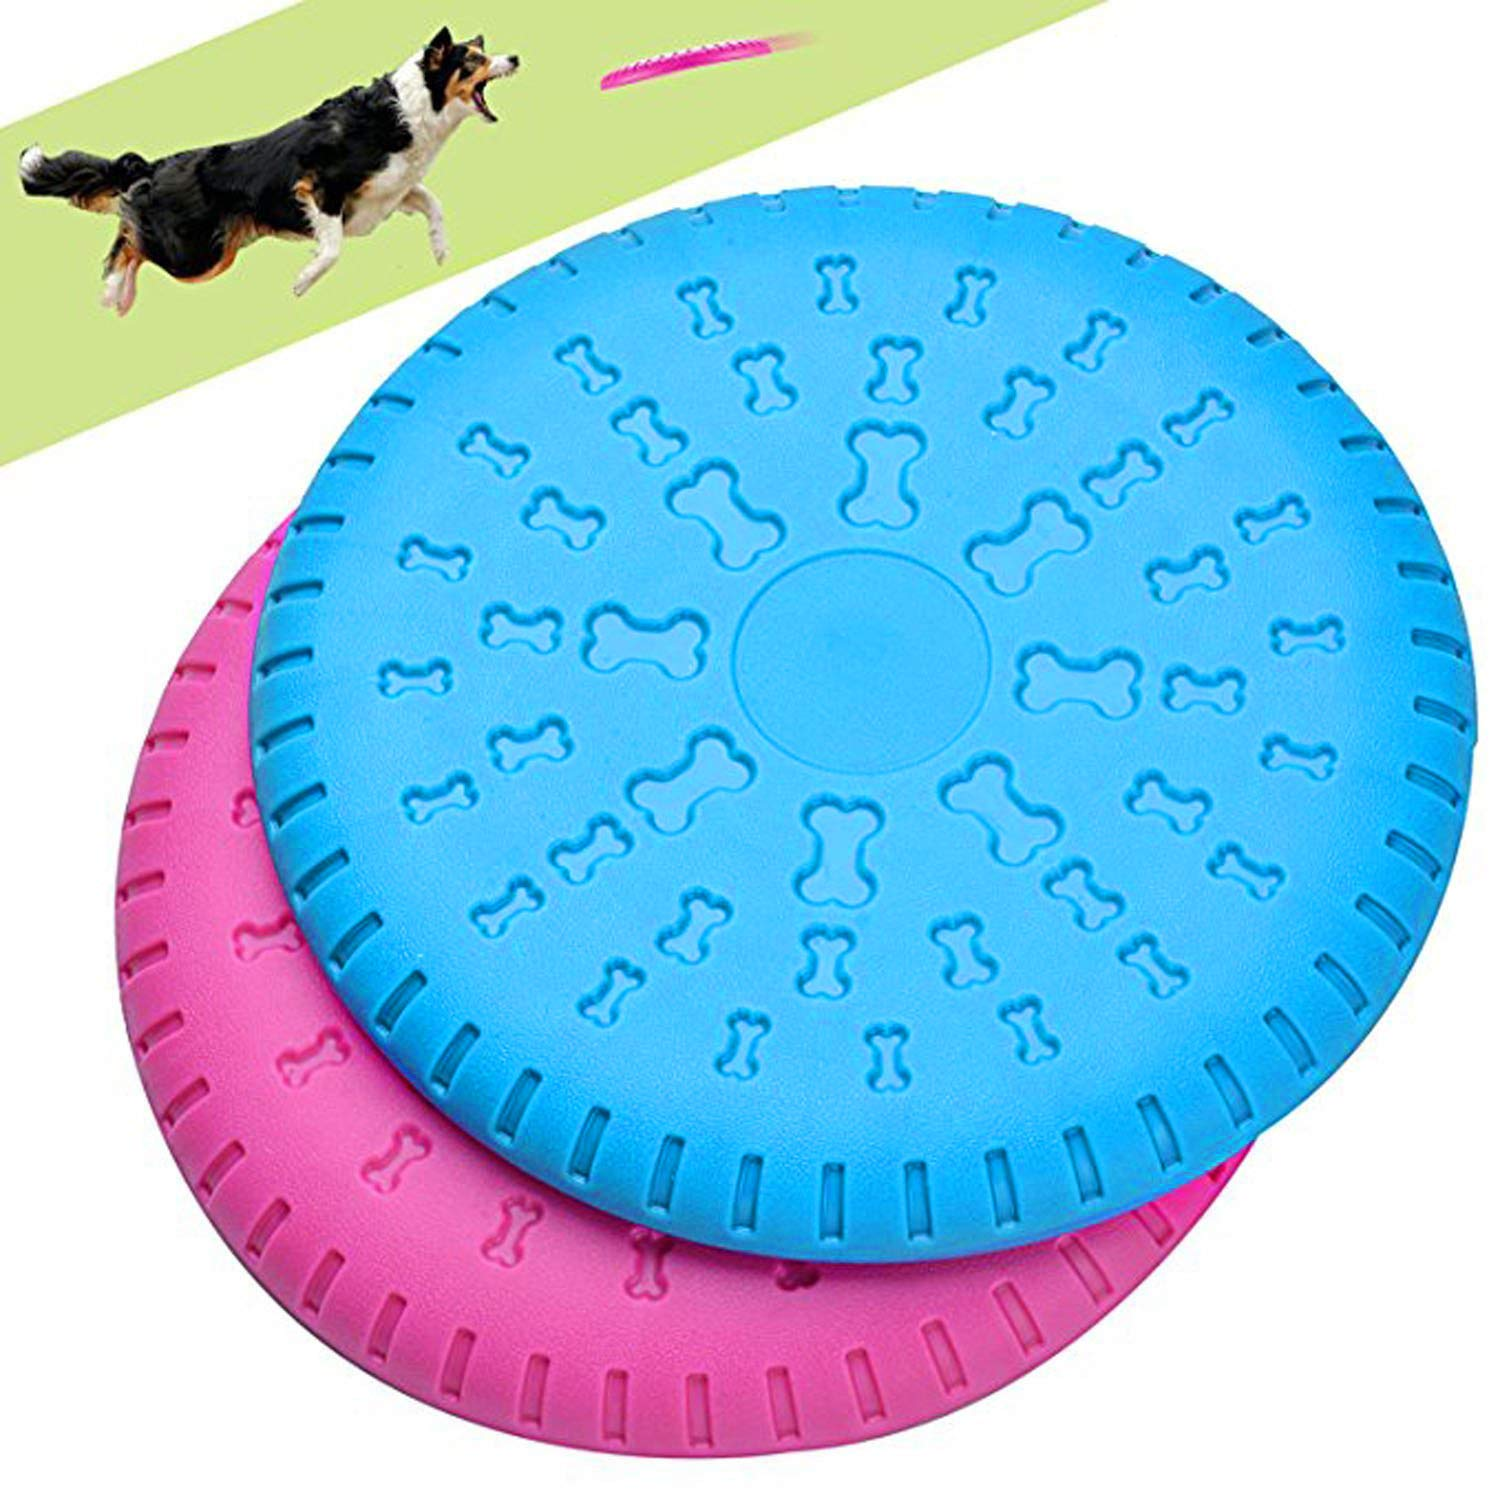 Dog Flying Discs 2 in 1 Pet Flying Disc Saucer Dog Training Feeding Toy Pet Interactive Toy for Outdoor Training Discs for Medium//Large Dogs Blue